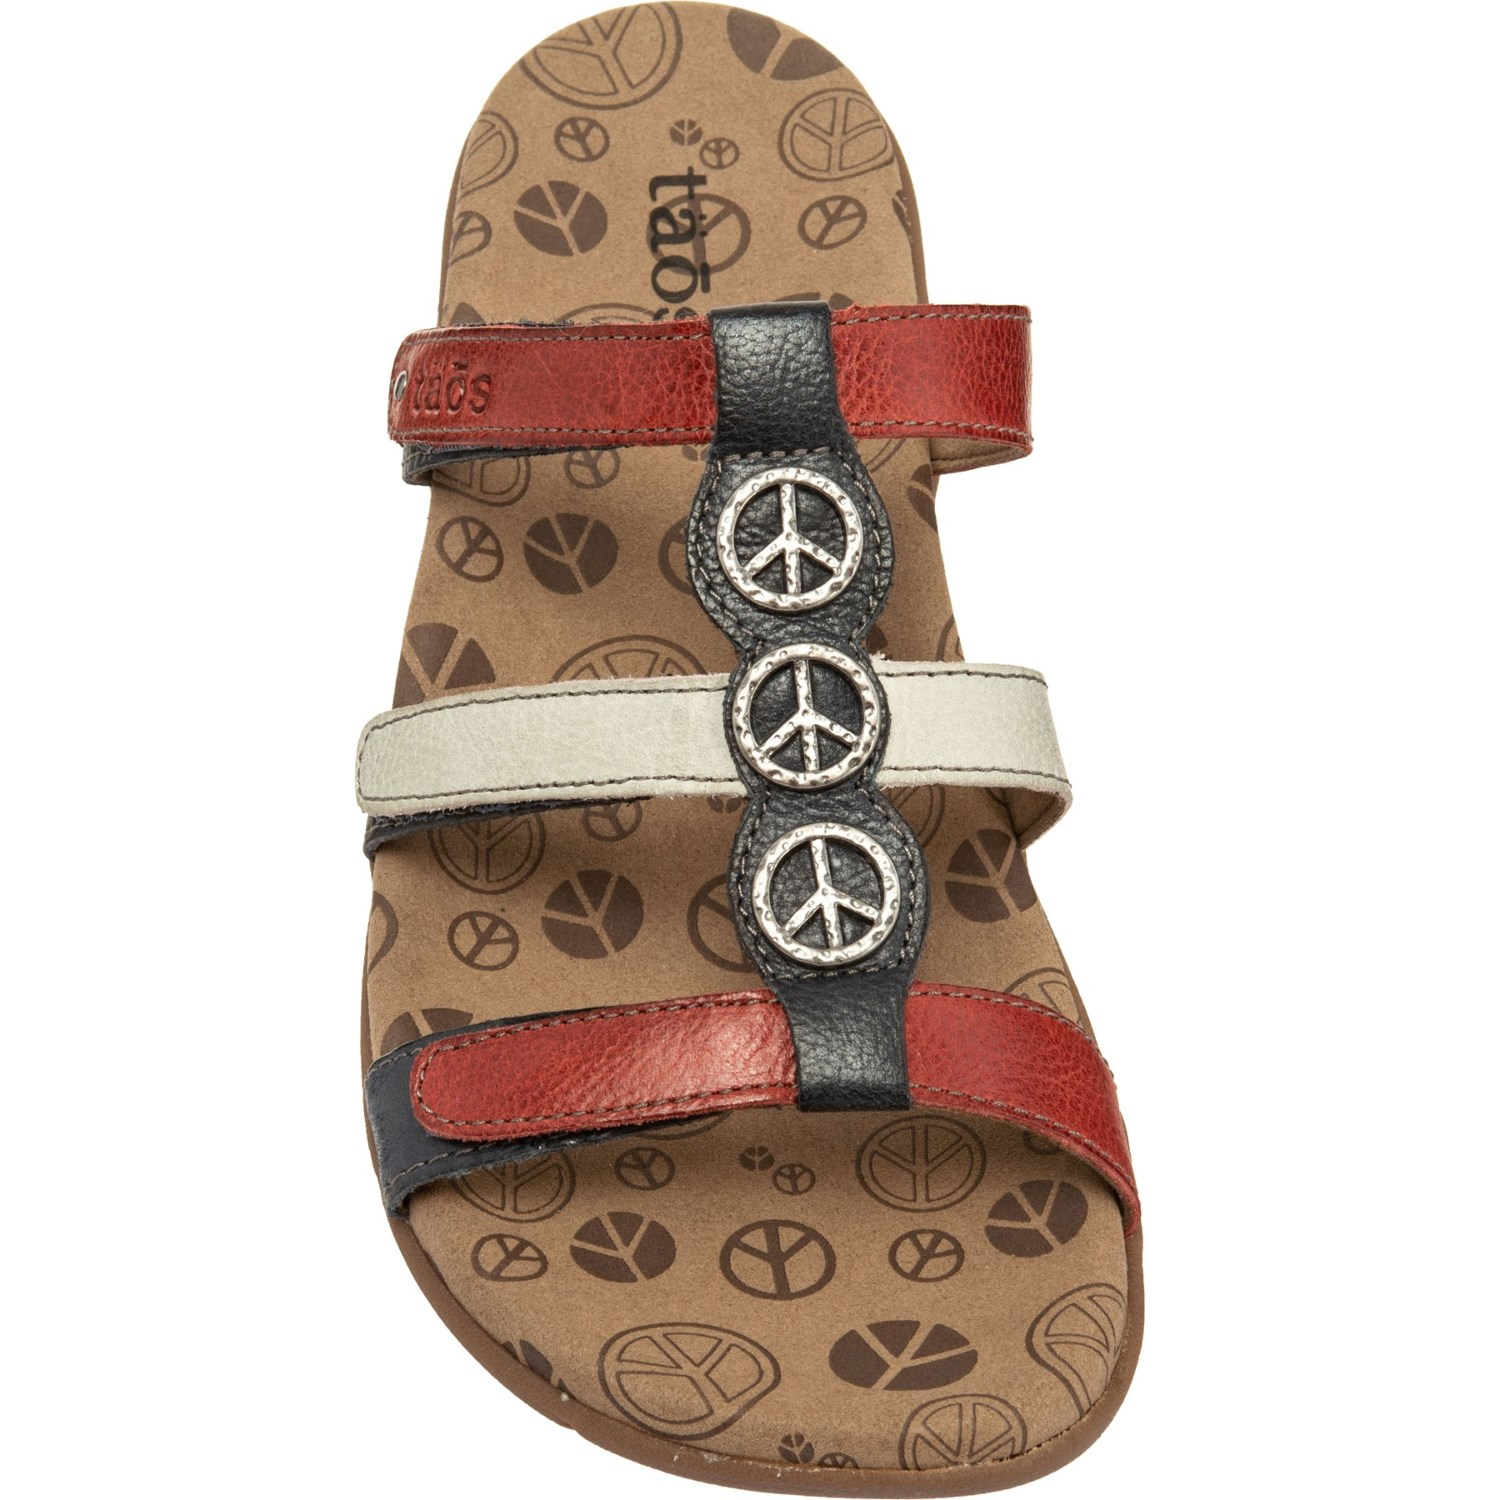 0d6bcbe7e17 Taos Footwear Peace Prize Slide Sandals (For Women) - Save 33%